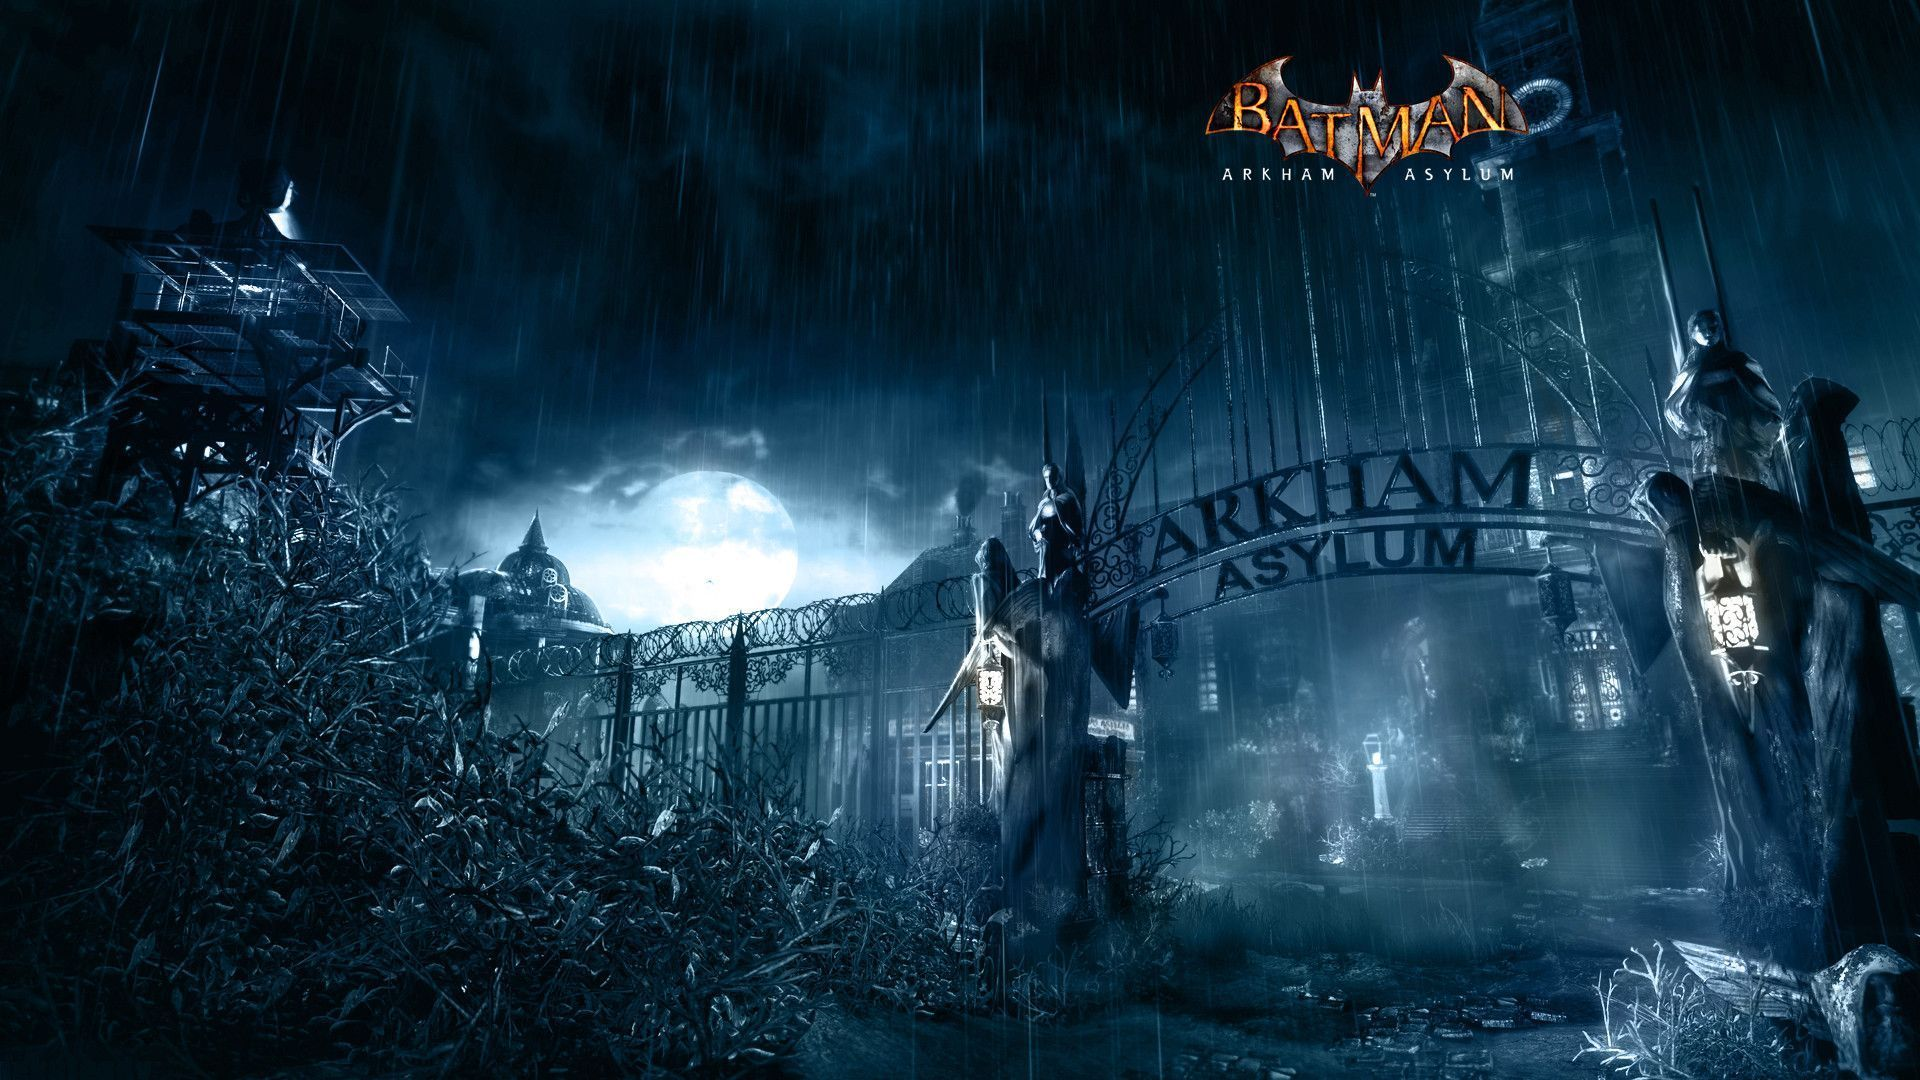 Wallpapers For Batman Arkham Asylum Wallpaper 1920x1080 1920x1080